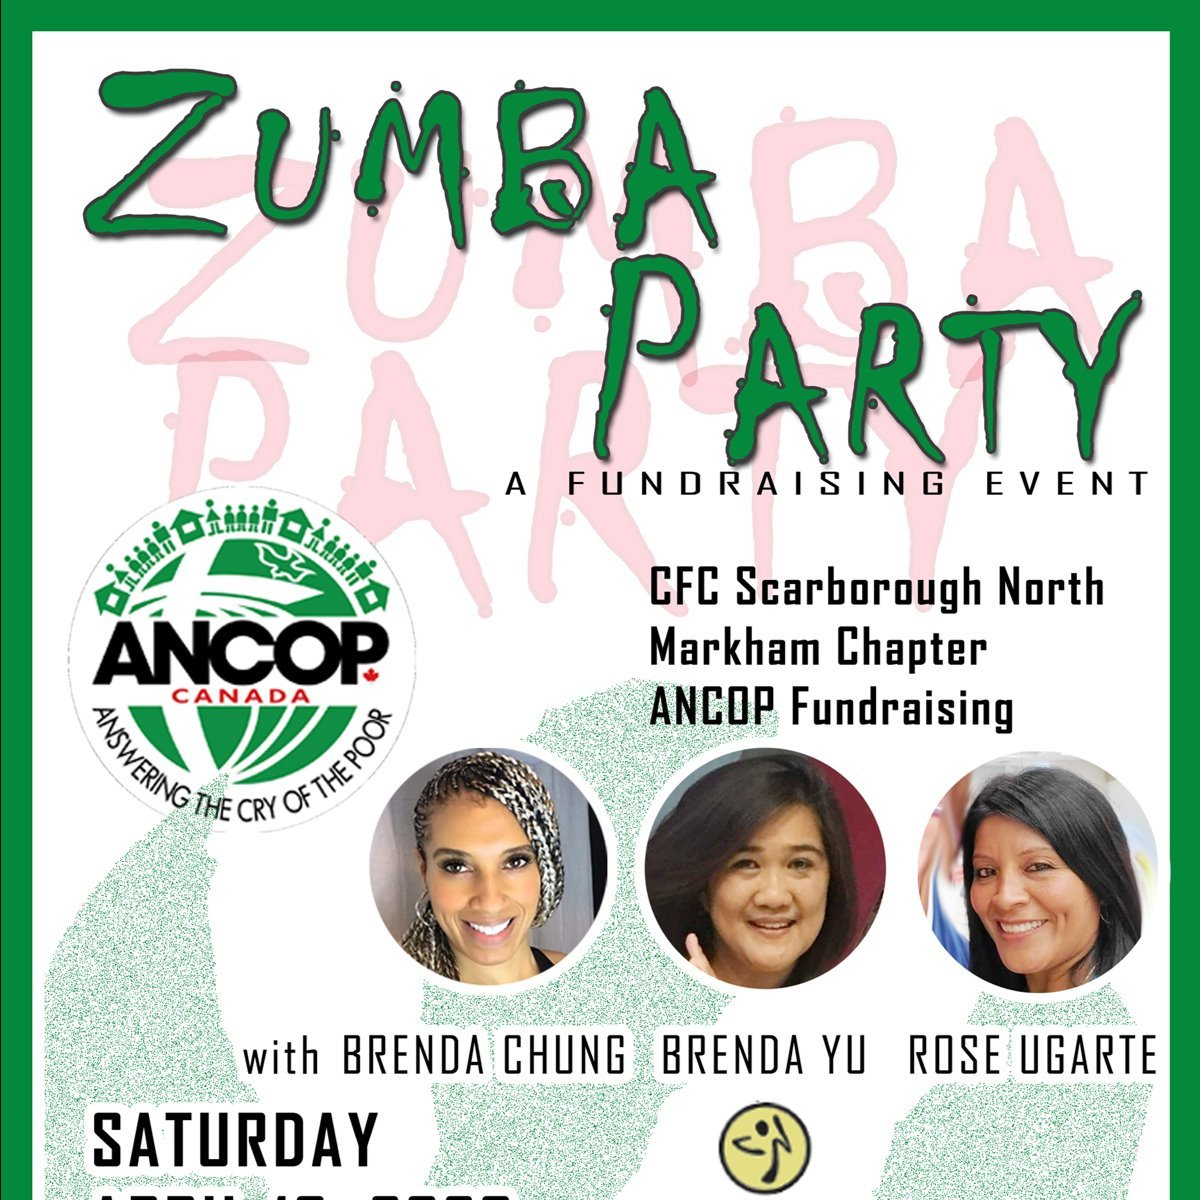 ANCOP - ZUMBA FUNDRAISING EVENT